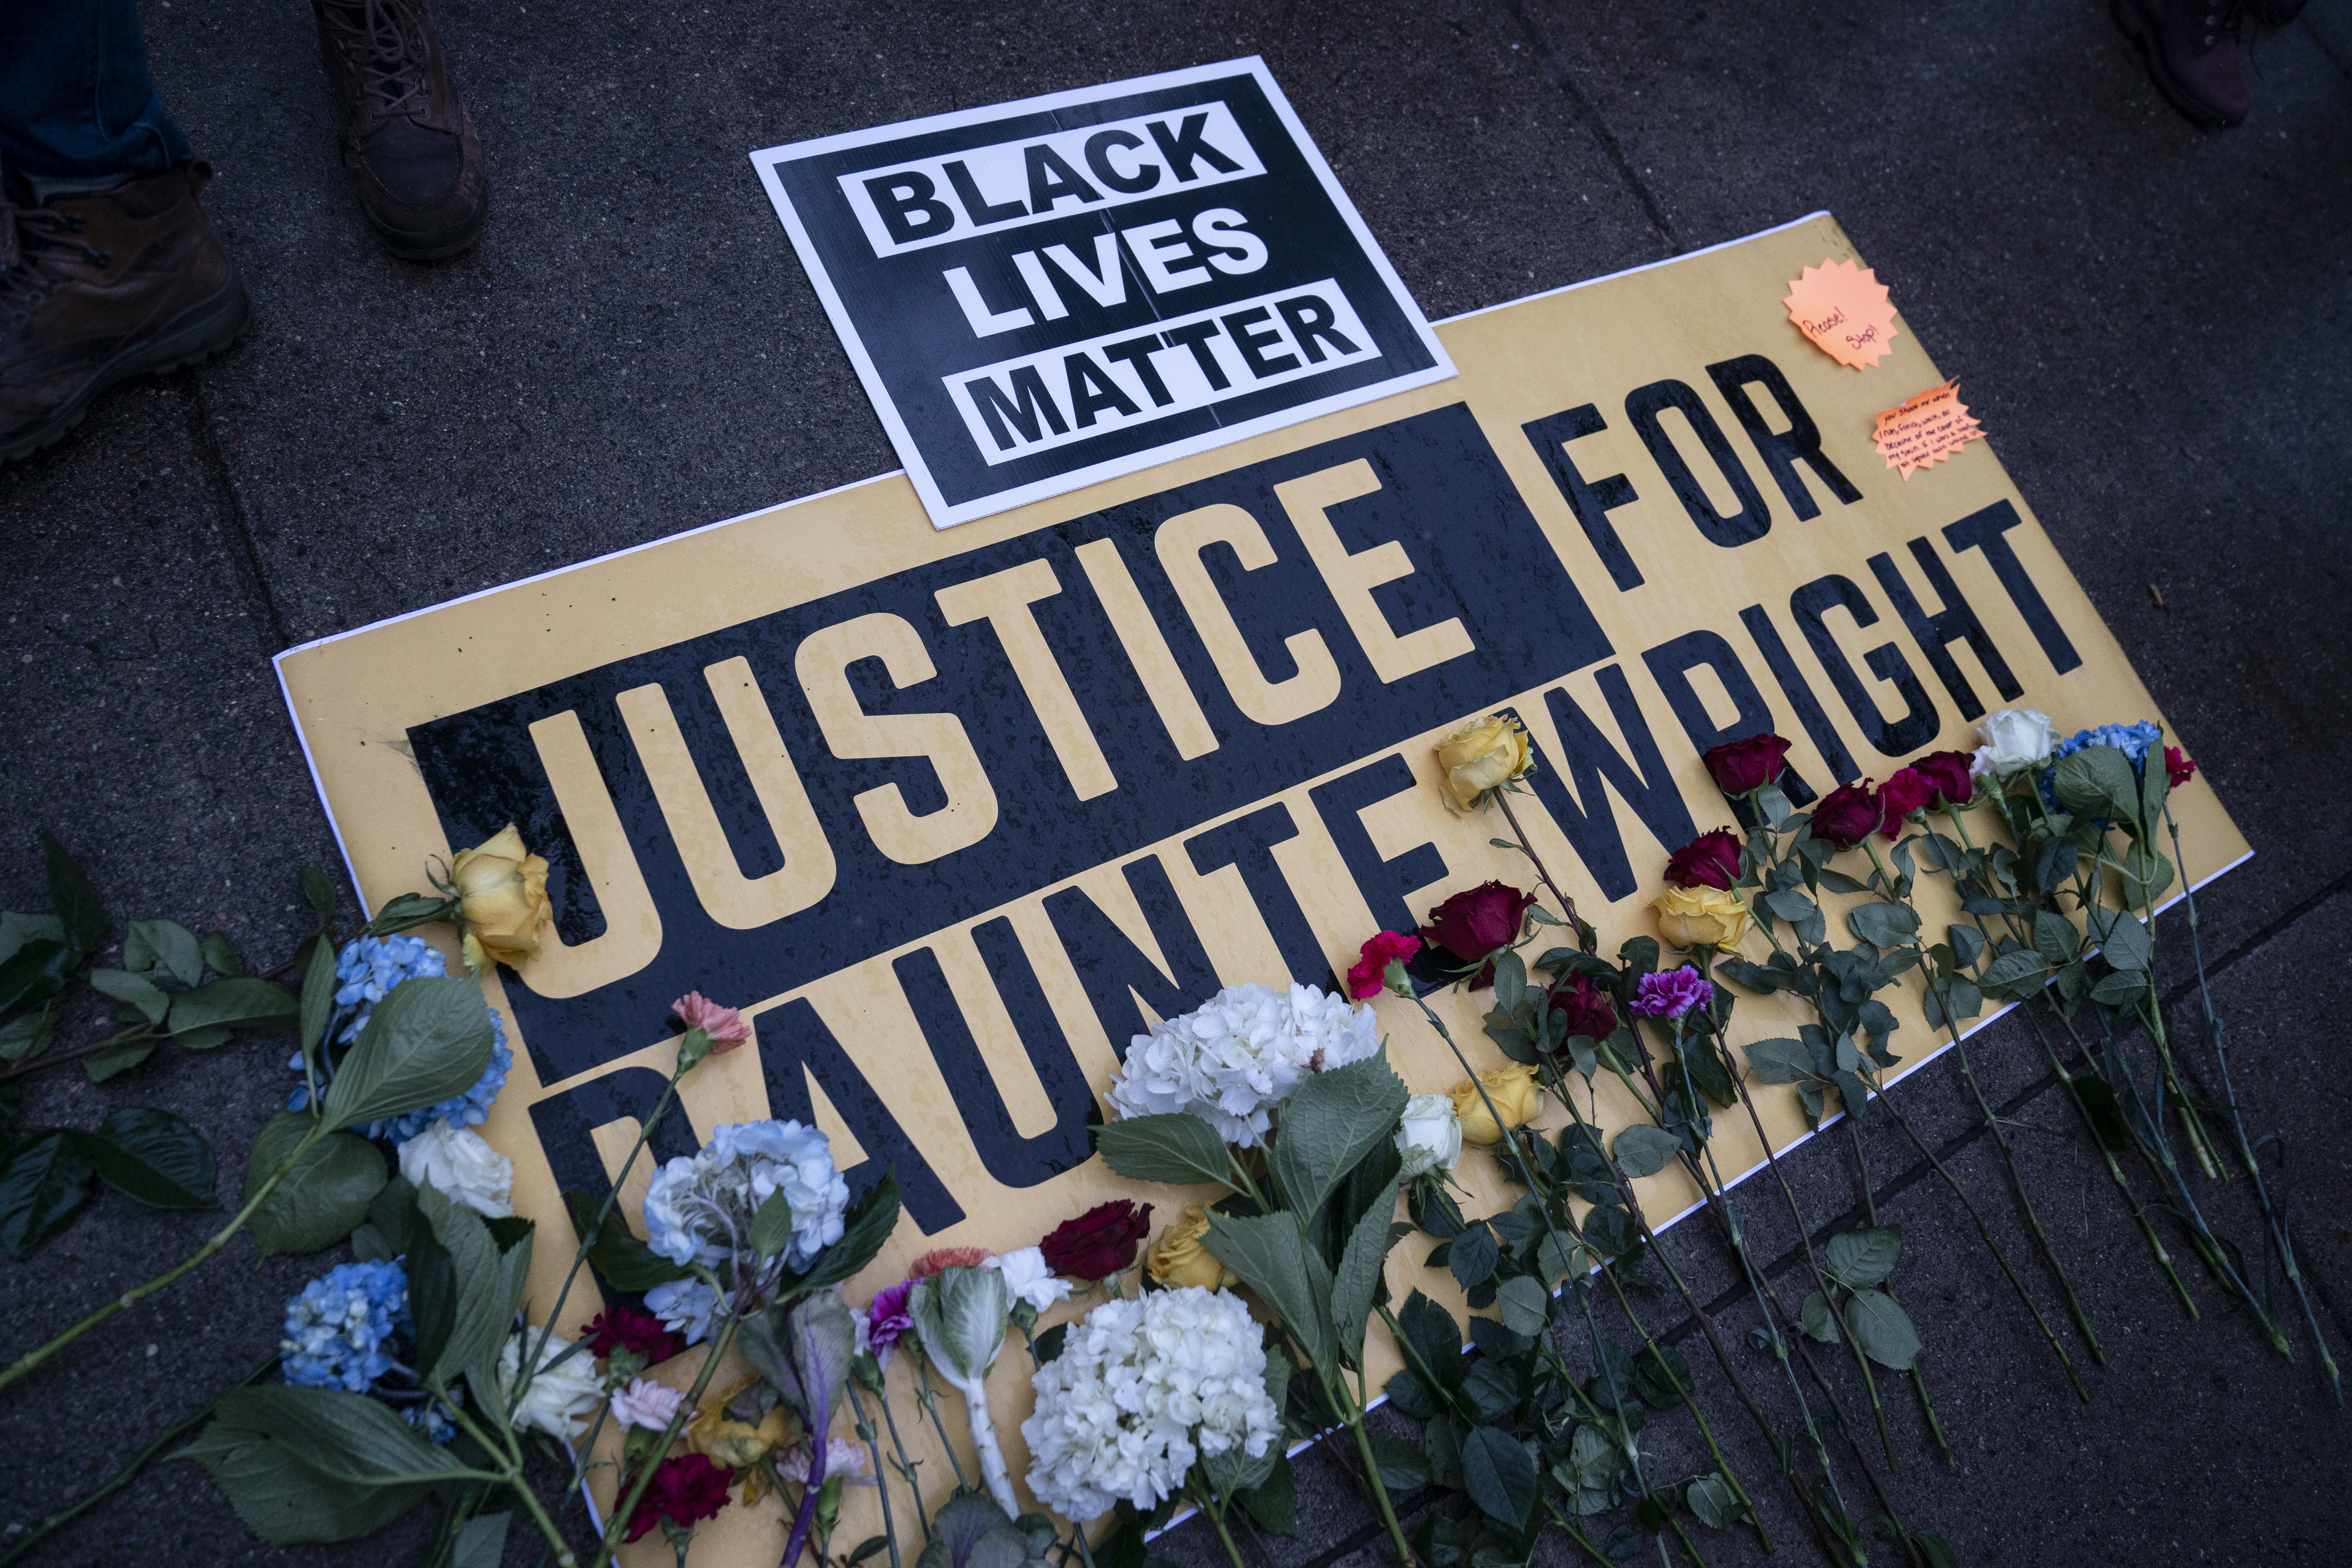 Flowers have been placed on a banner as demonstrators gather outside the Brooklyn Center Police Department on April 13, 2021 in Brooklyn Center, Minn., to protest Sunday's fatal shooting of Daunte Wright during a traffic stop.